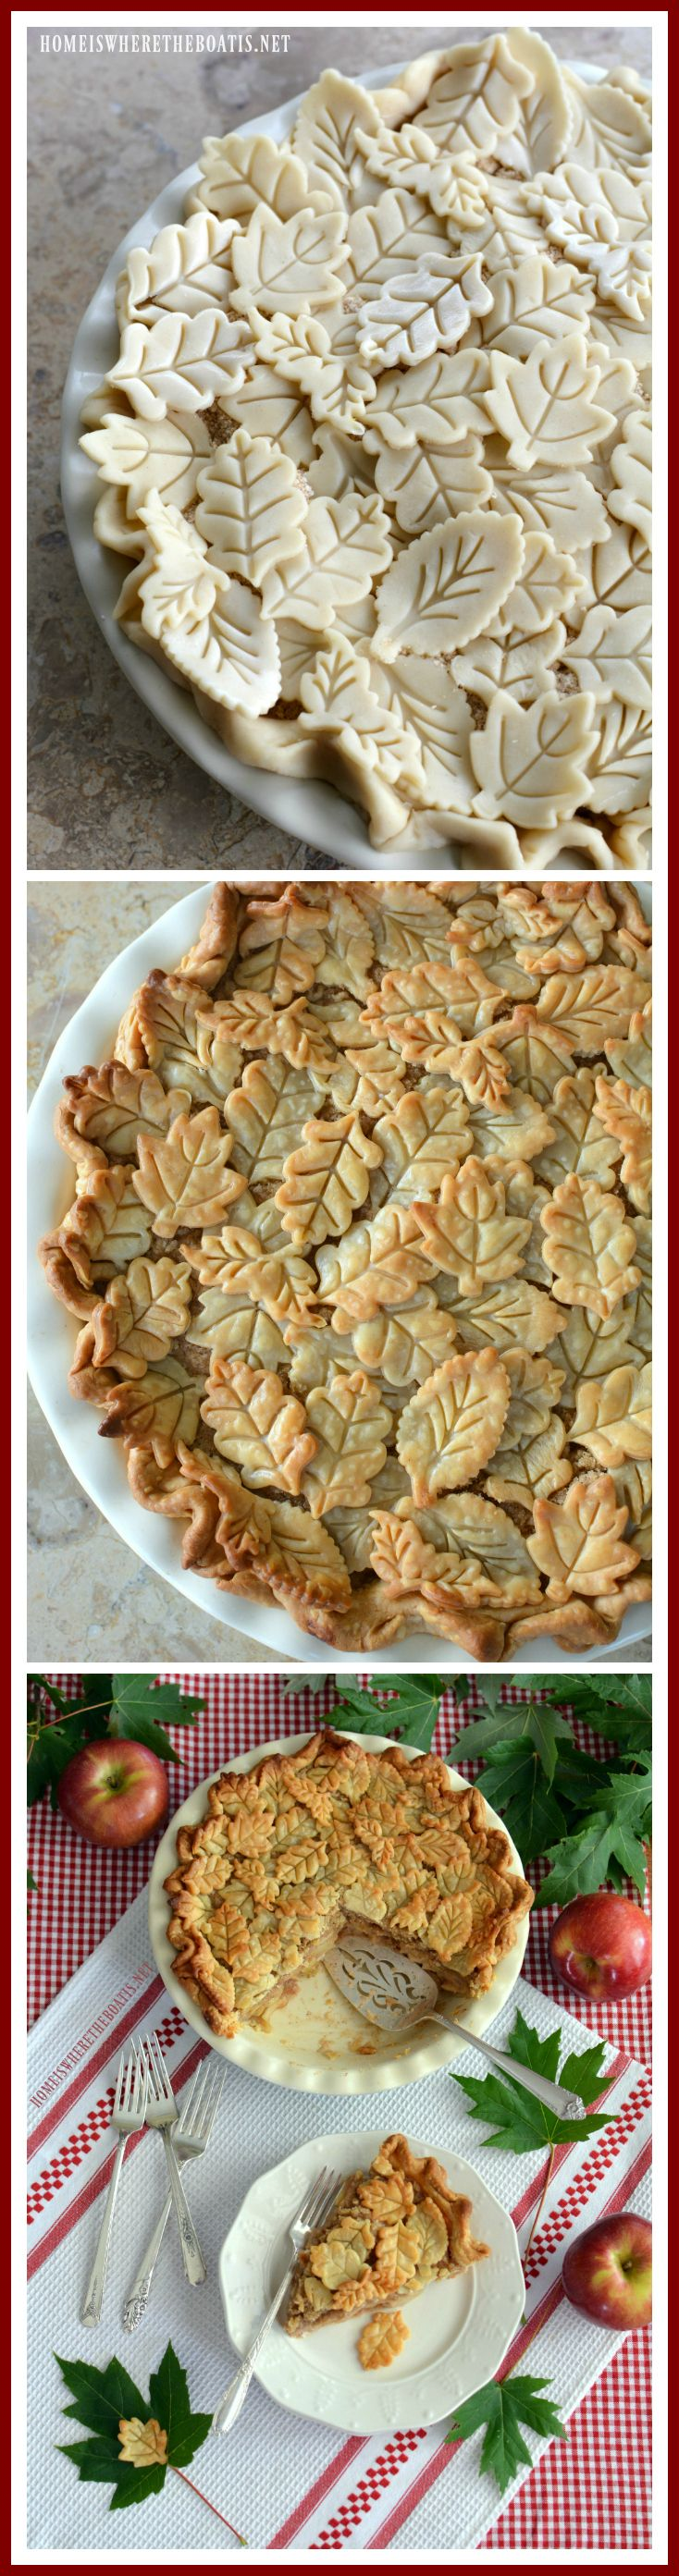 Apple Pie with pie crust leaf embellishments | homeiswheretheboatis.net #recipe… (Apple Recipes Dessert)